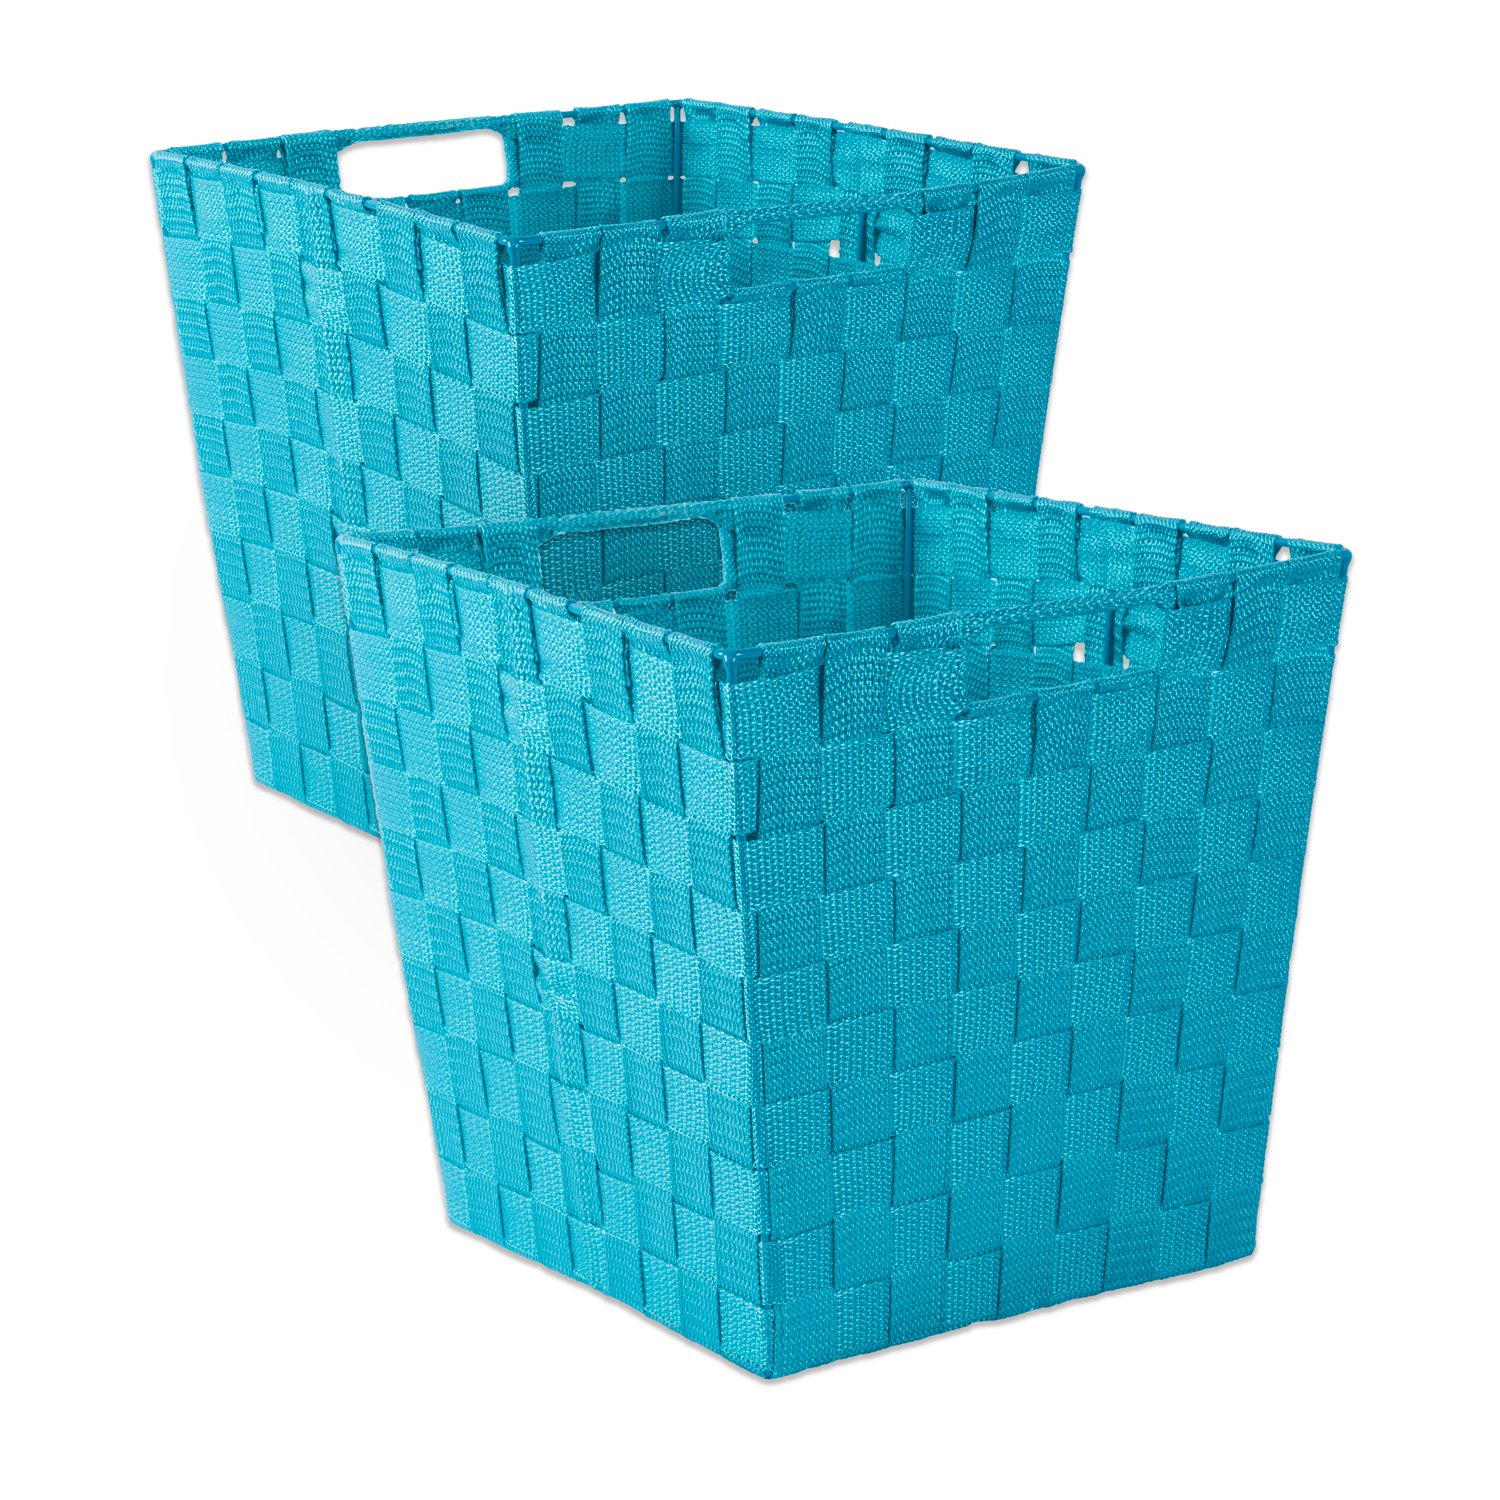 DII Durable Trapezoid Woven Nylon Storage Basket for Organizing Your Home, Office, or Closets (Medium Bin - 11x11x11'') Teal - Set of 2